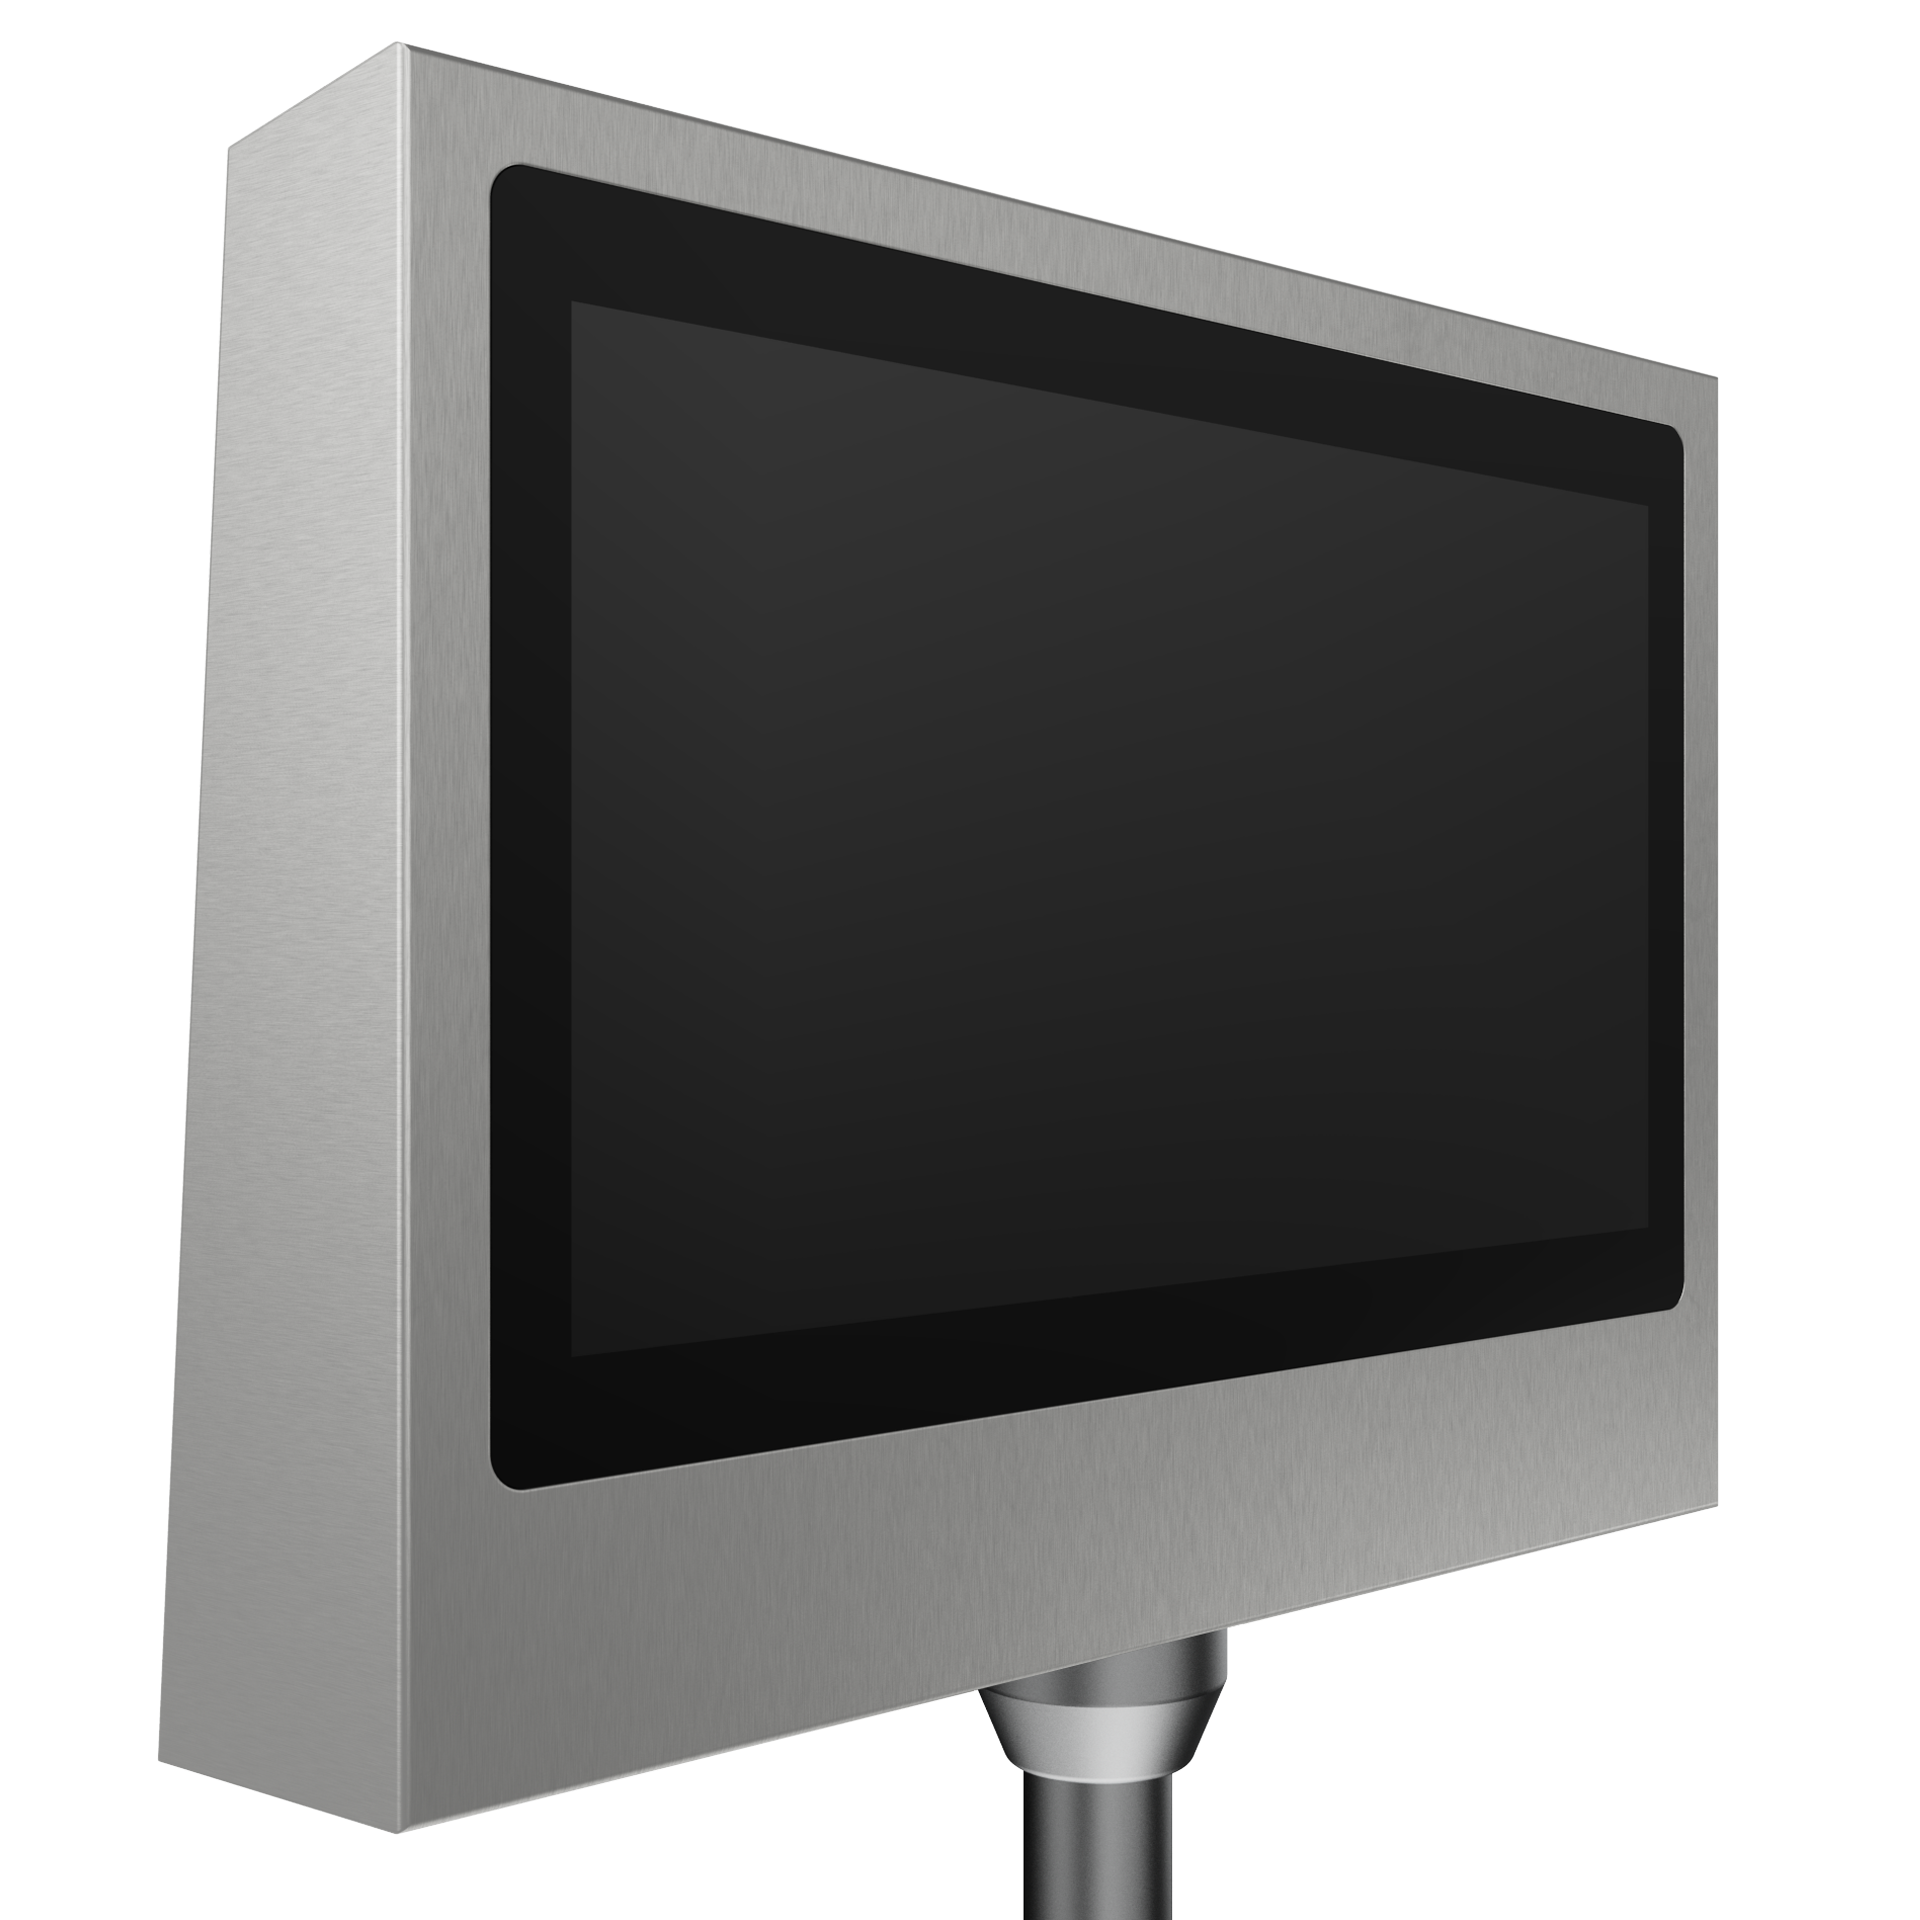 22-inch industrial touch panel stainless steel